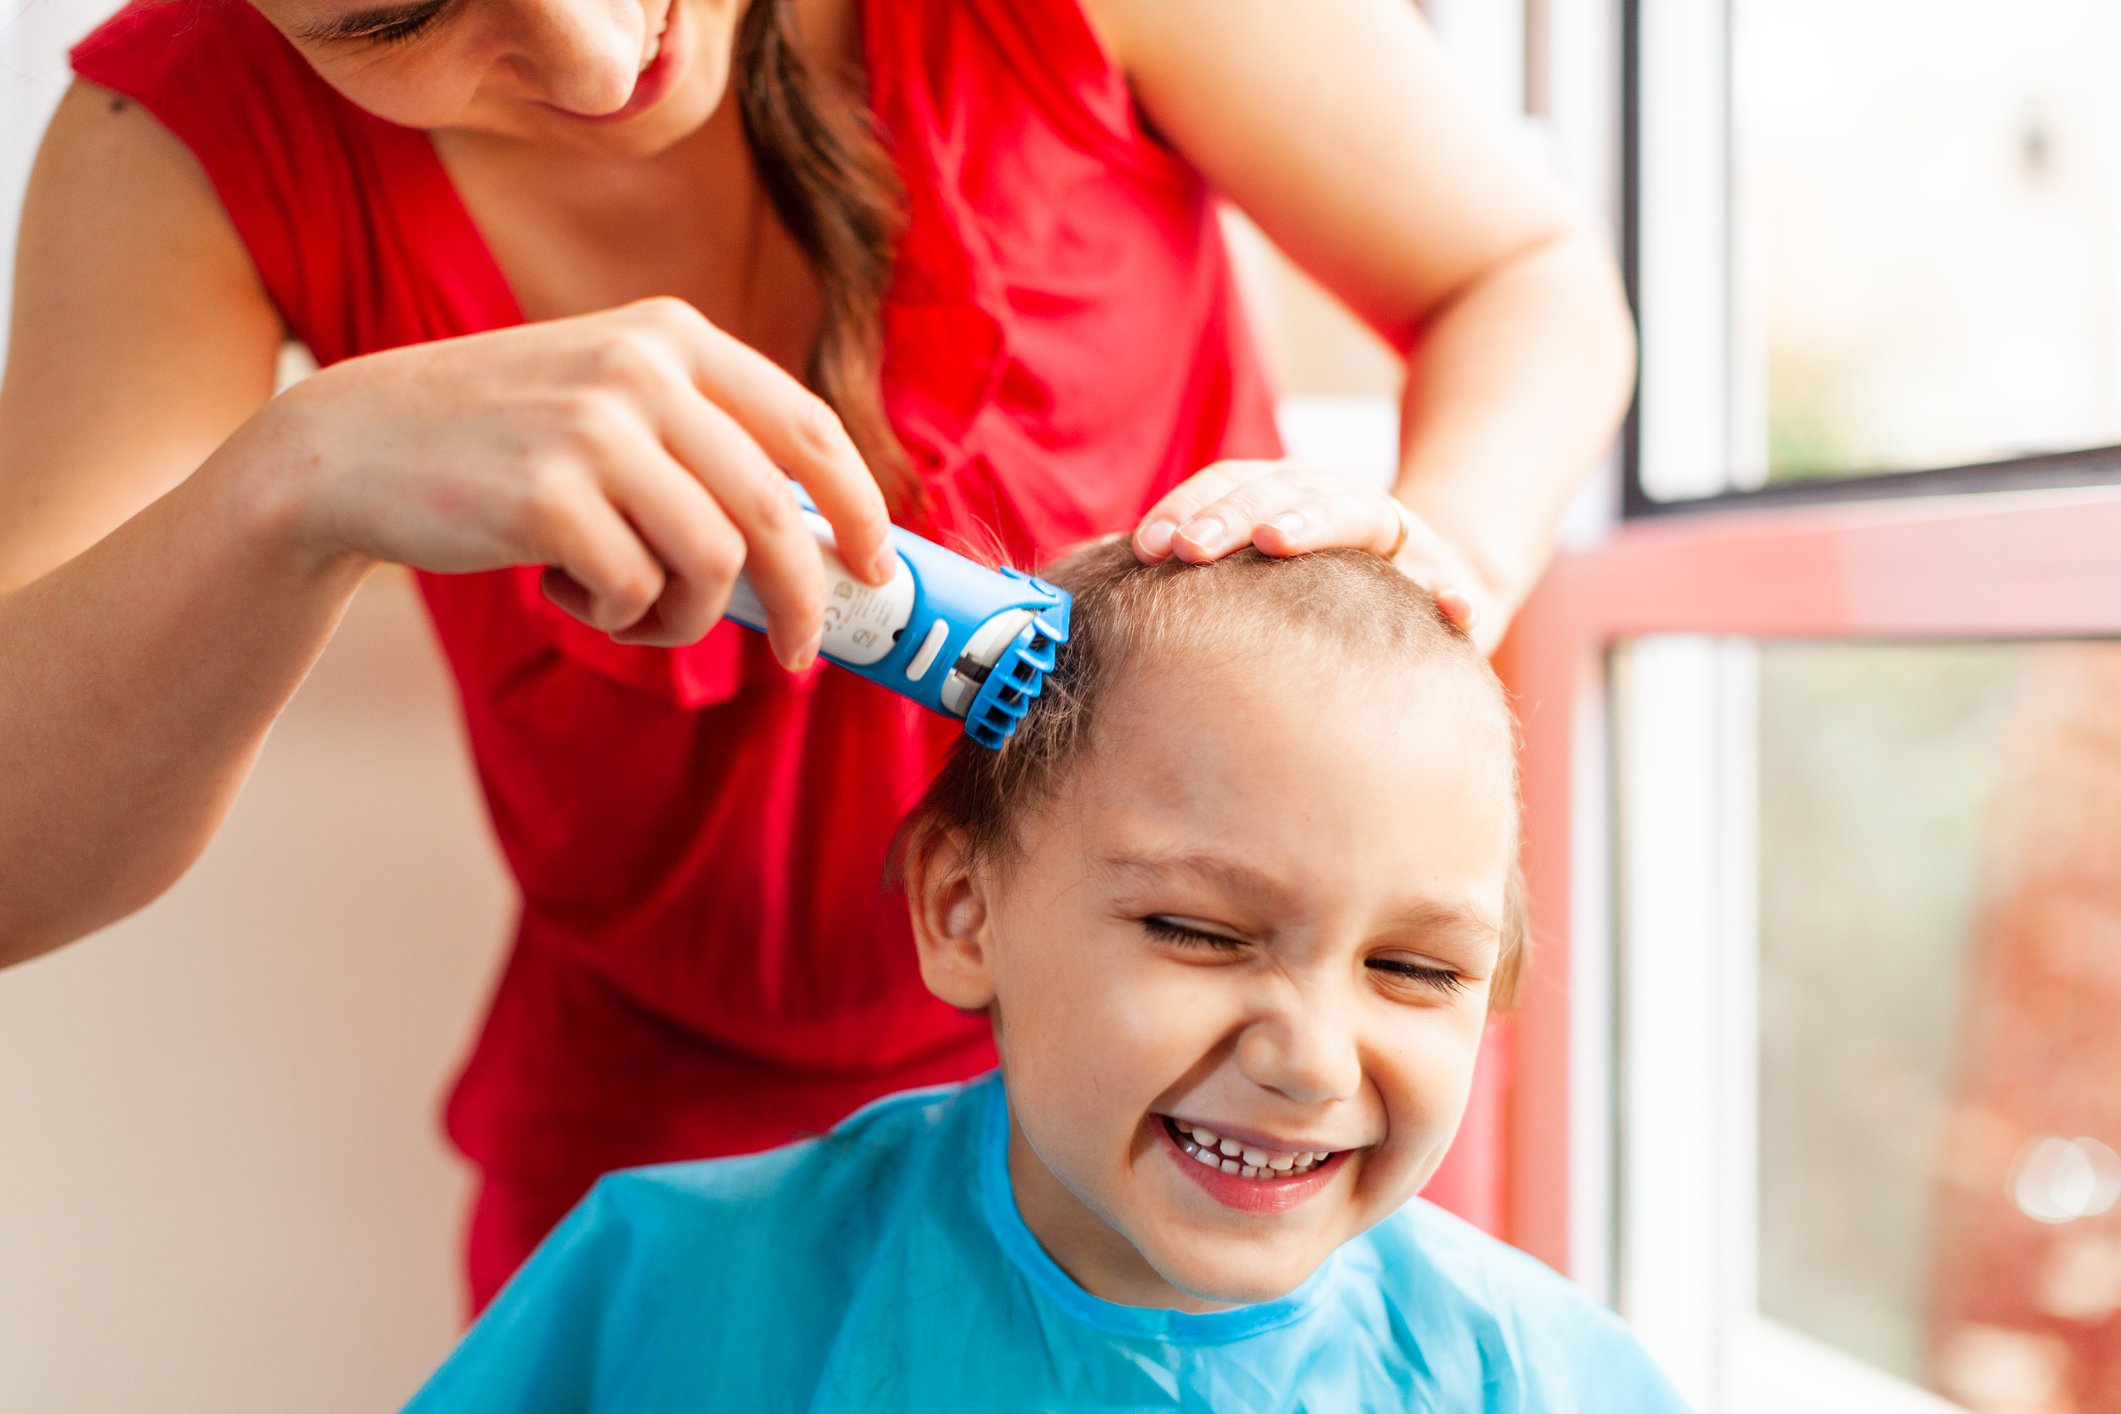 Mother trimming toddlers hair  | Photo: Getty Images